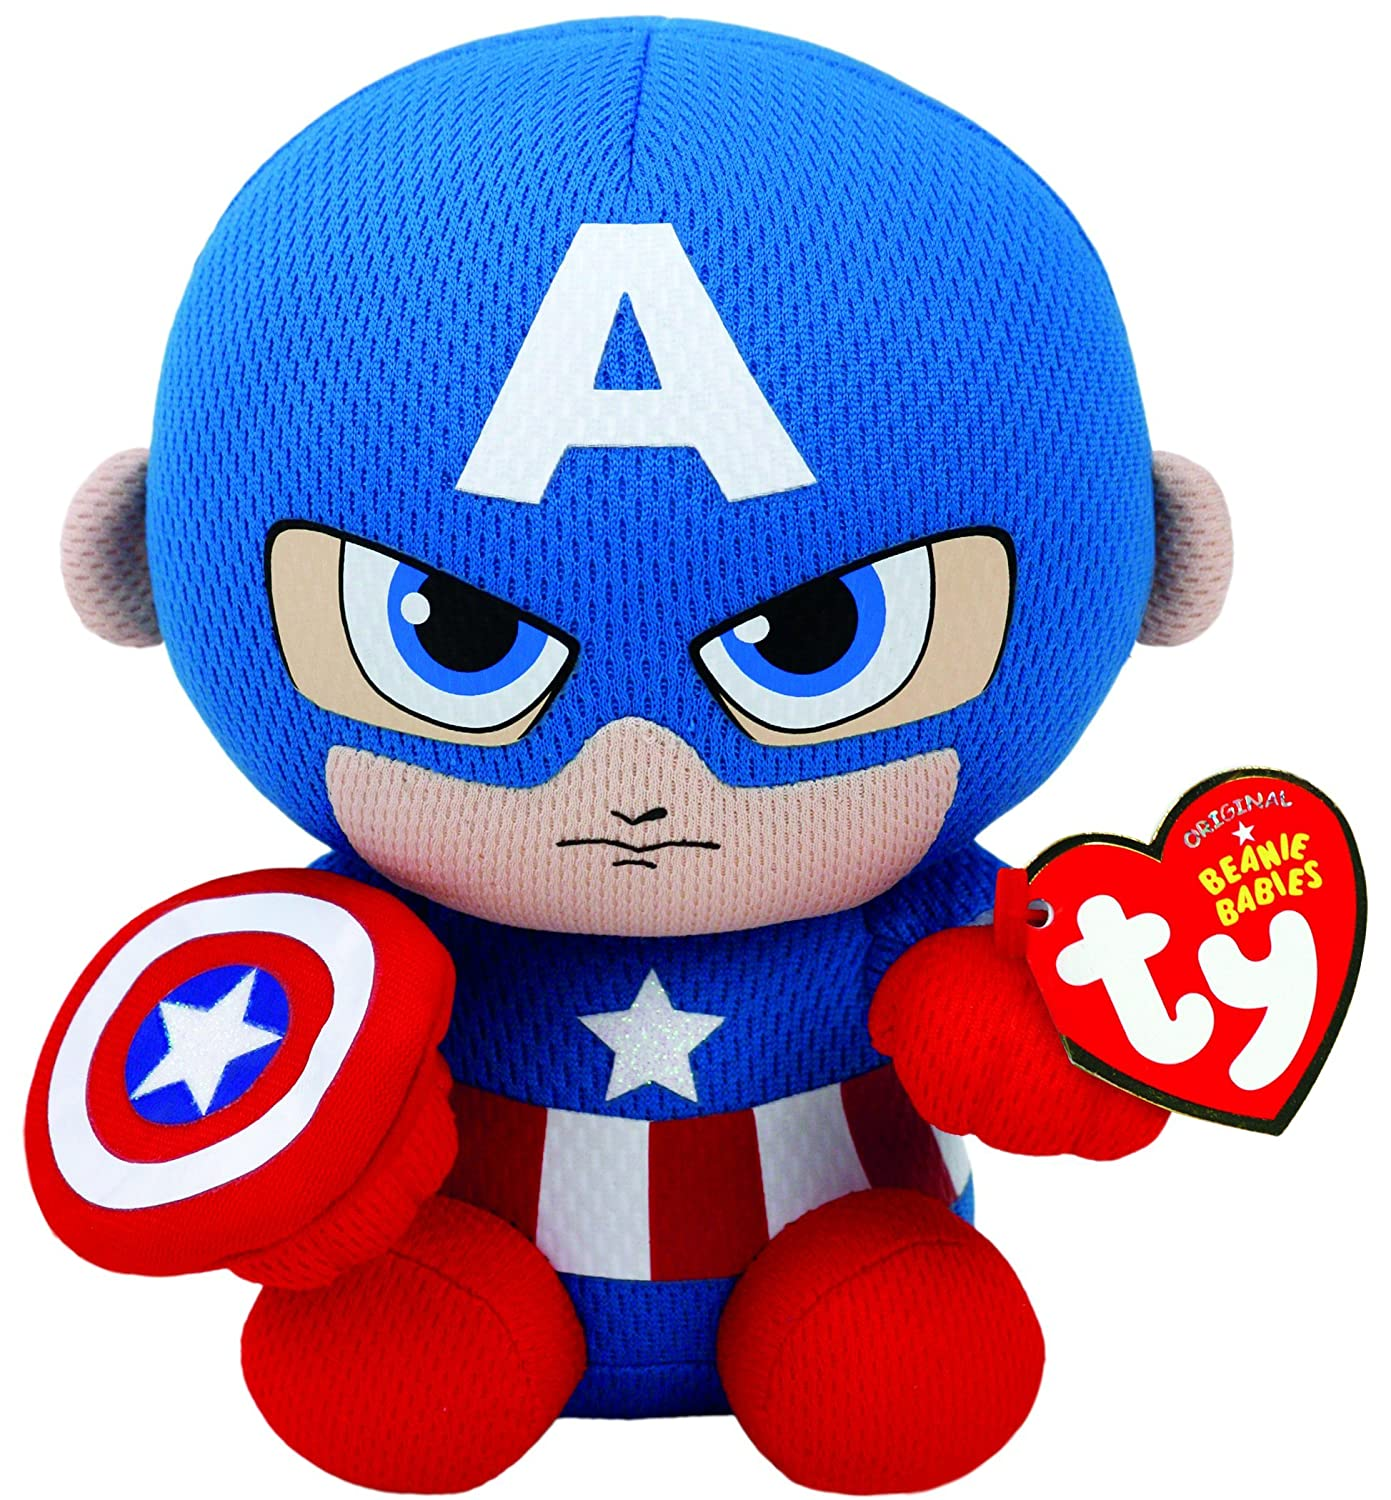 Ty Captain America Plush, Blue/Red/White, Regular